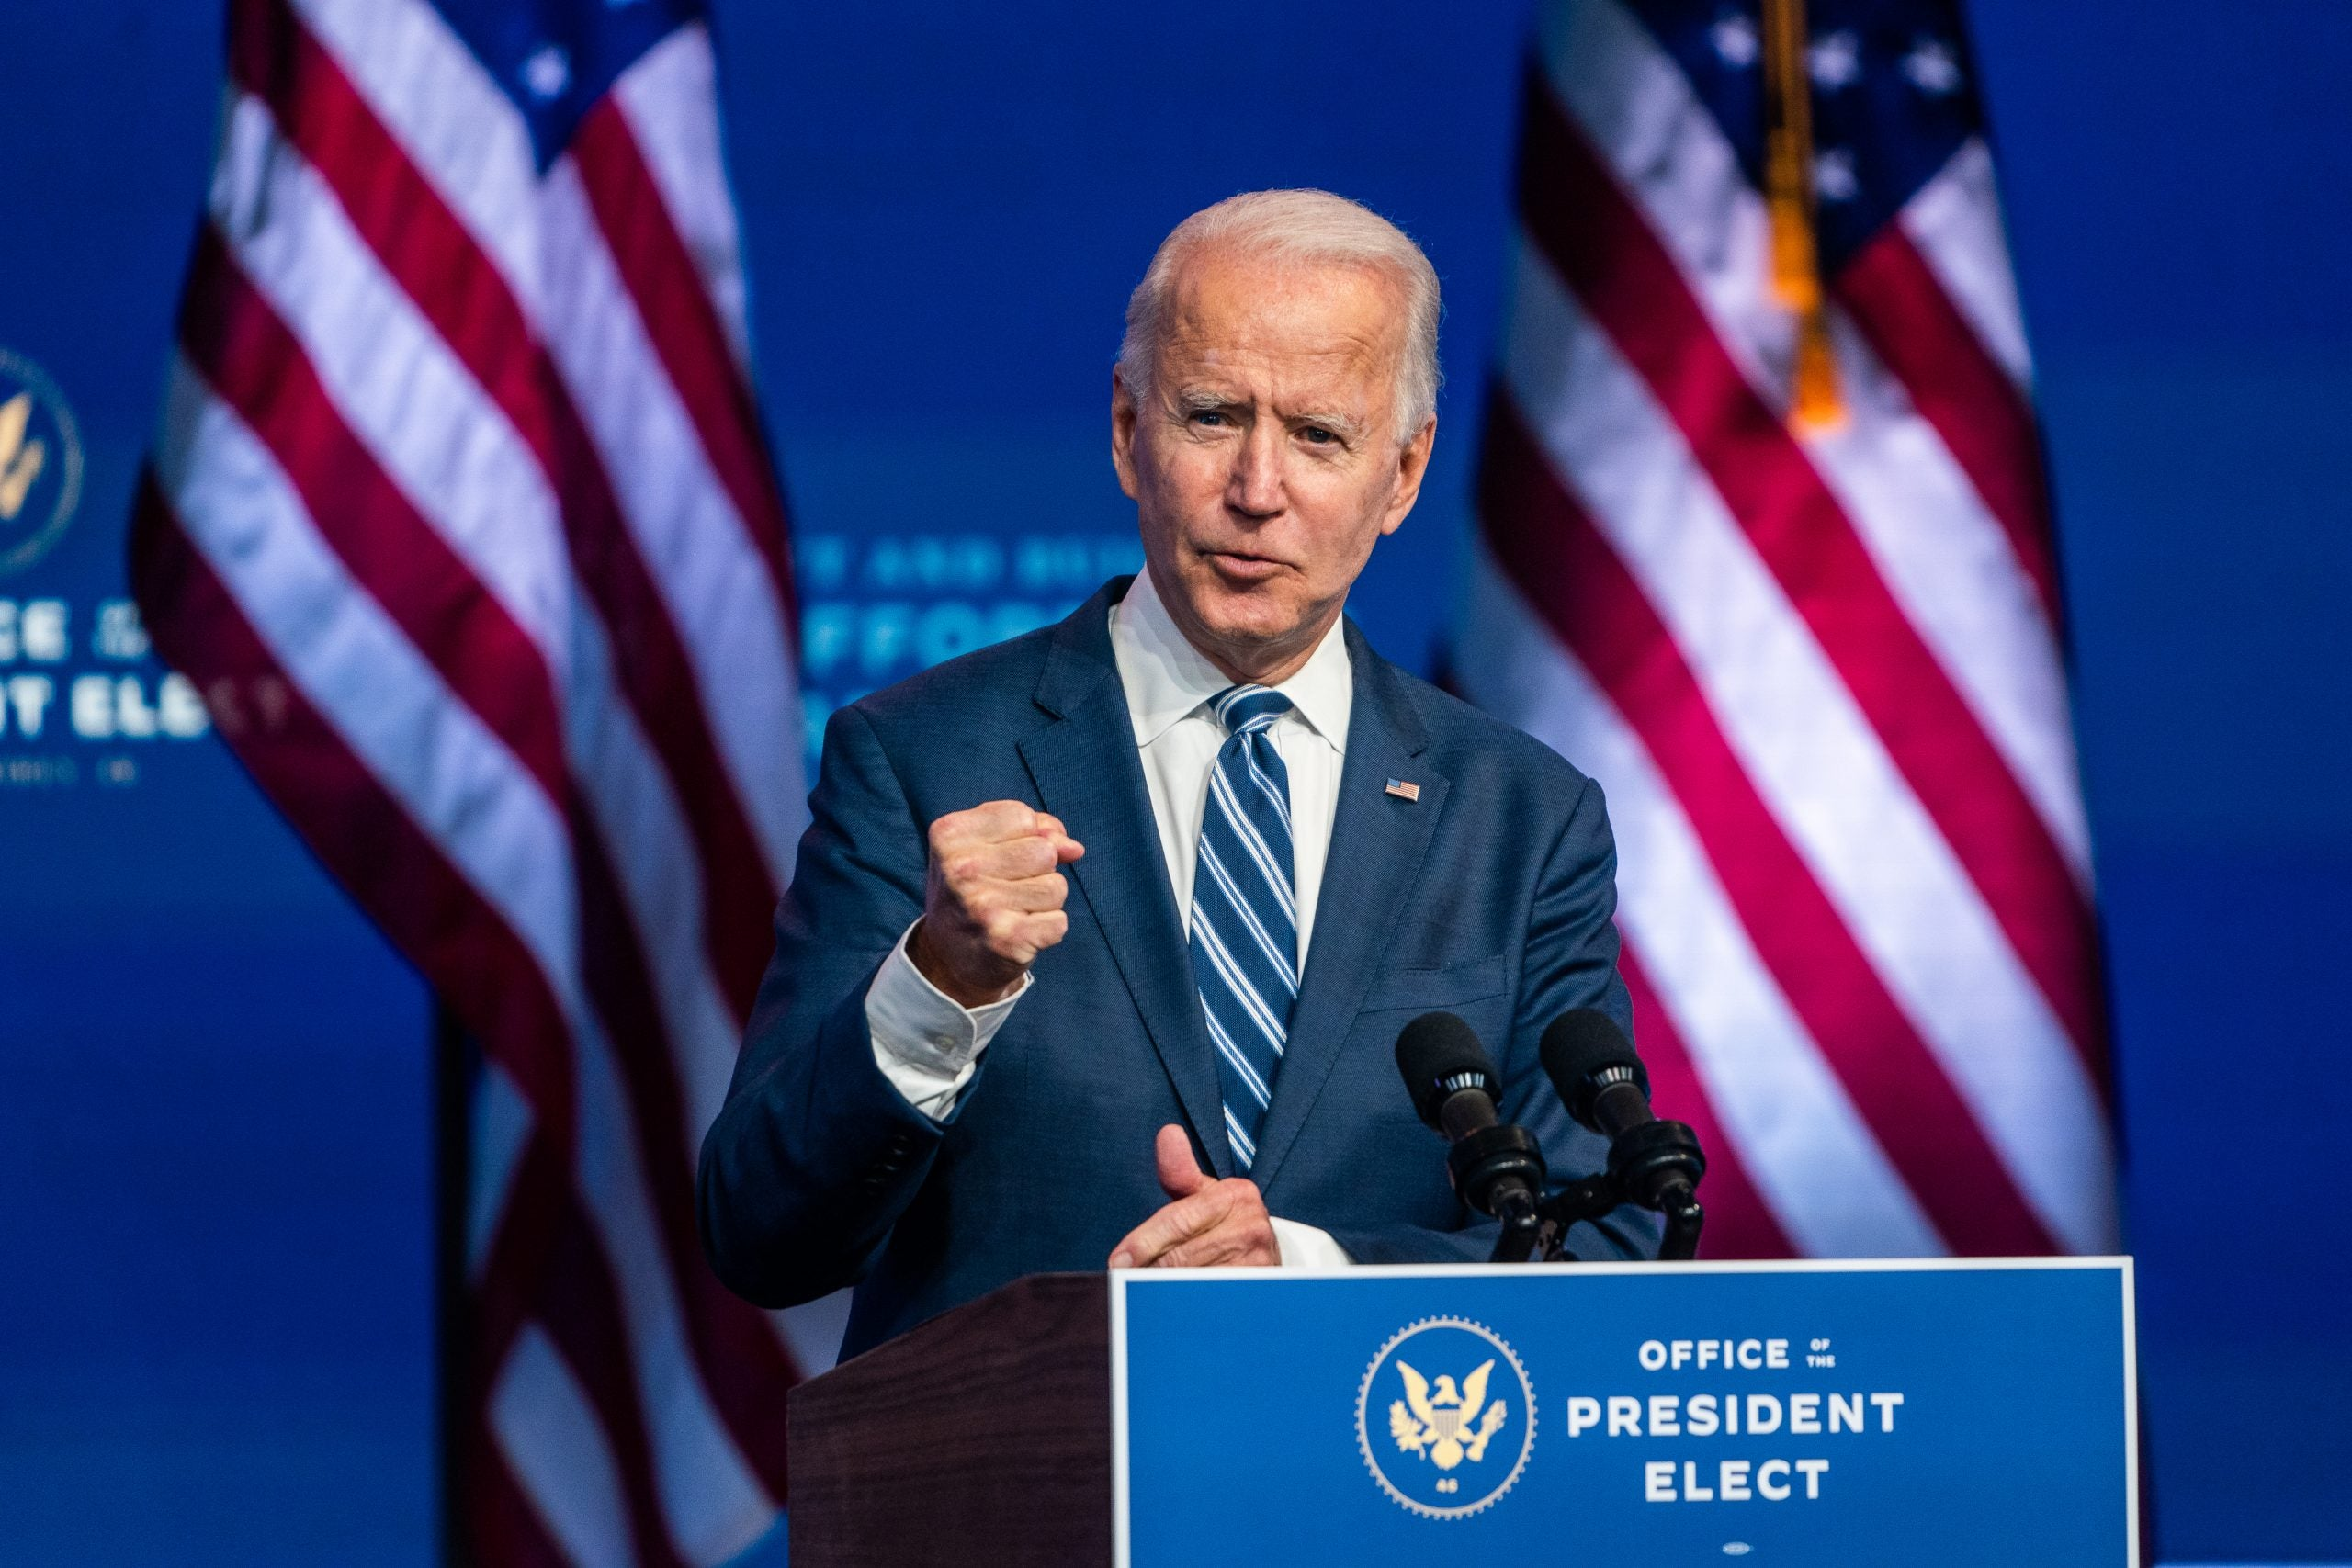 Why Joe Biden's victory in the US election is good news for Boris Johnson